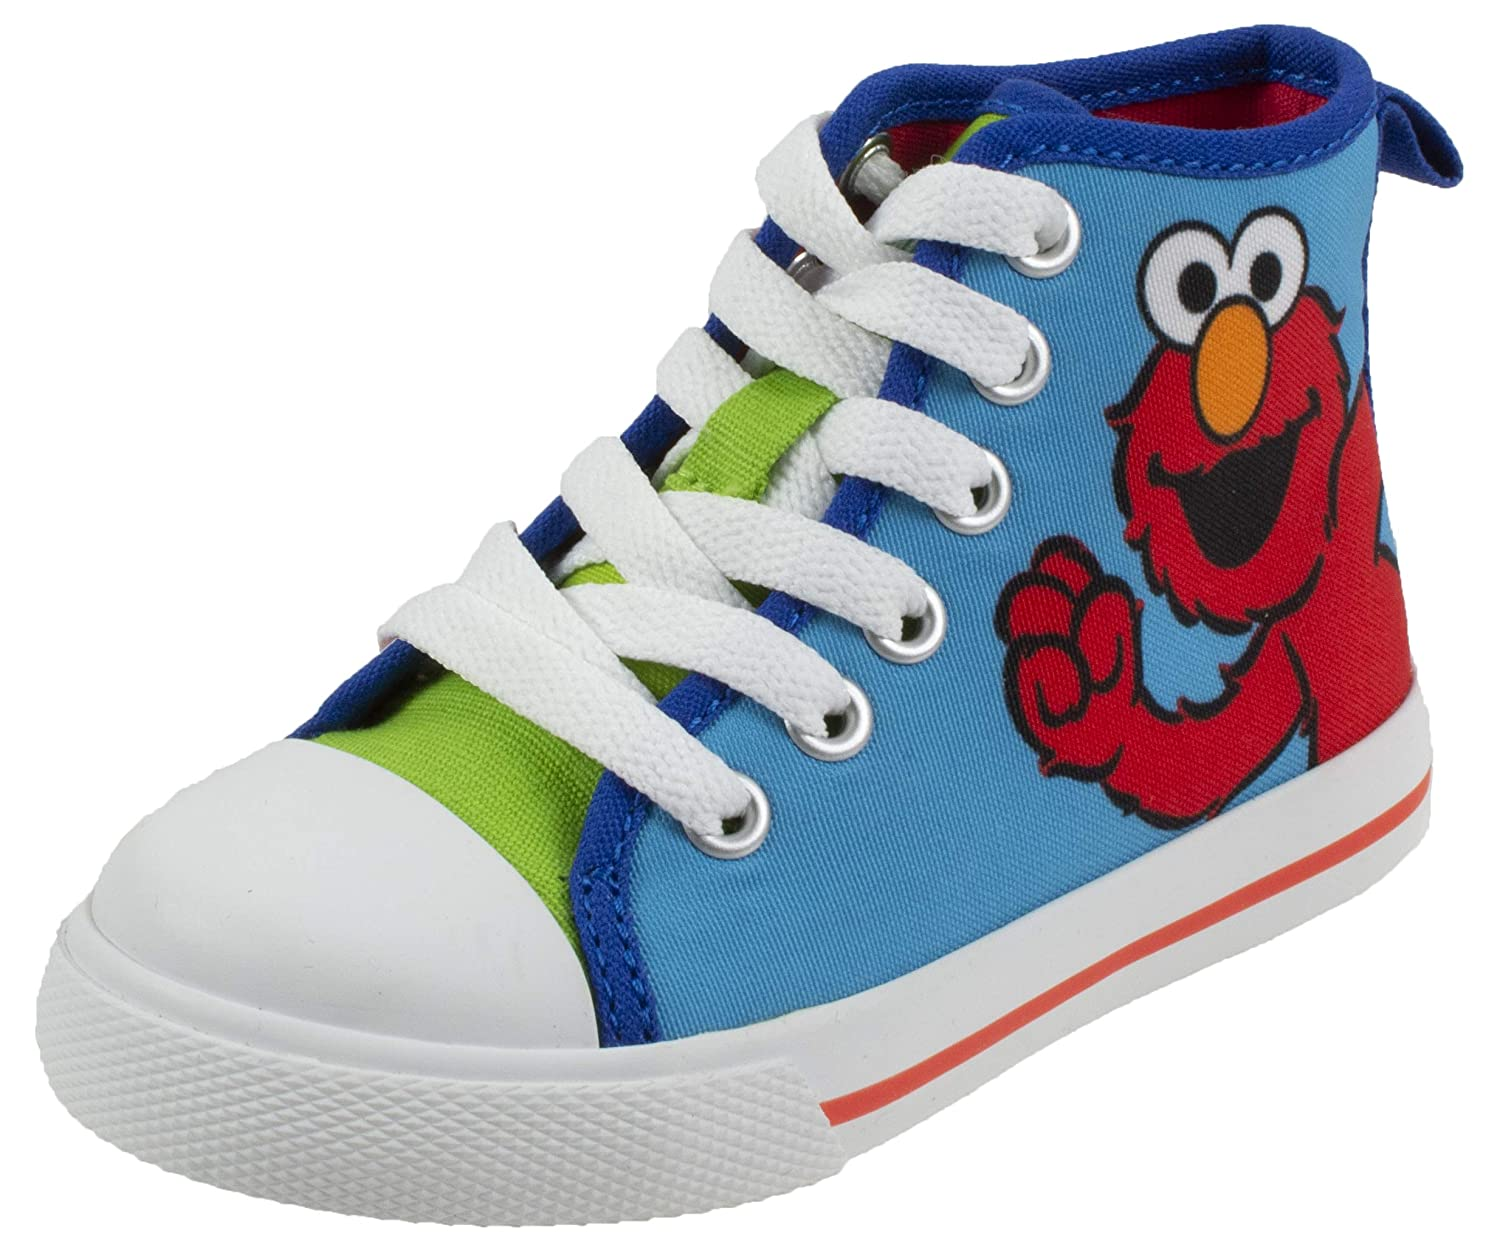 487f9a989c460 Sesame Street Elmo Shoes, Hi Top Sneaker with Laces, for Toddlers and Kids,  Size 6 to 12